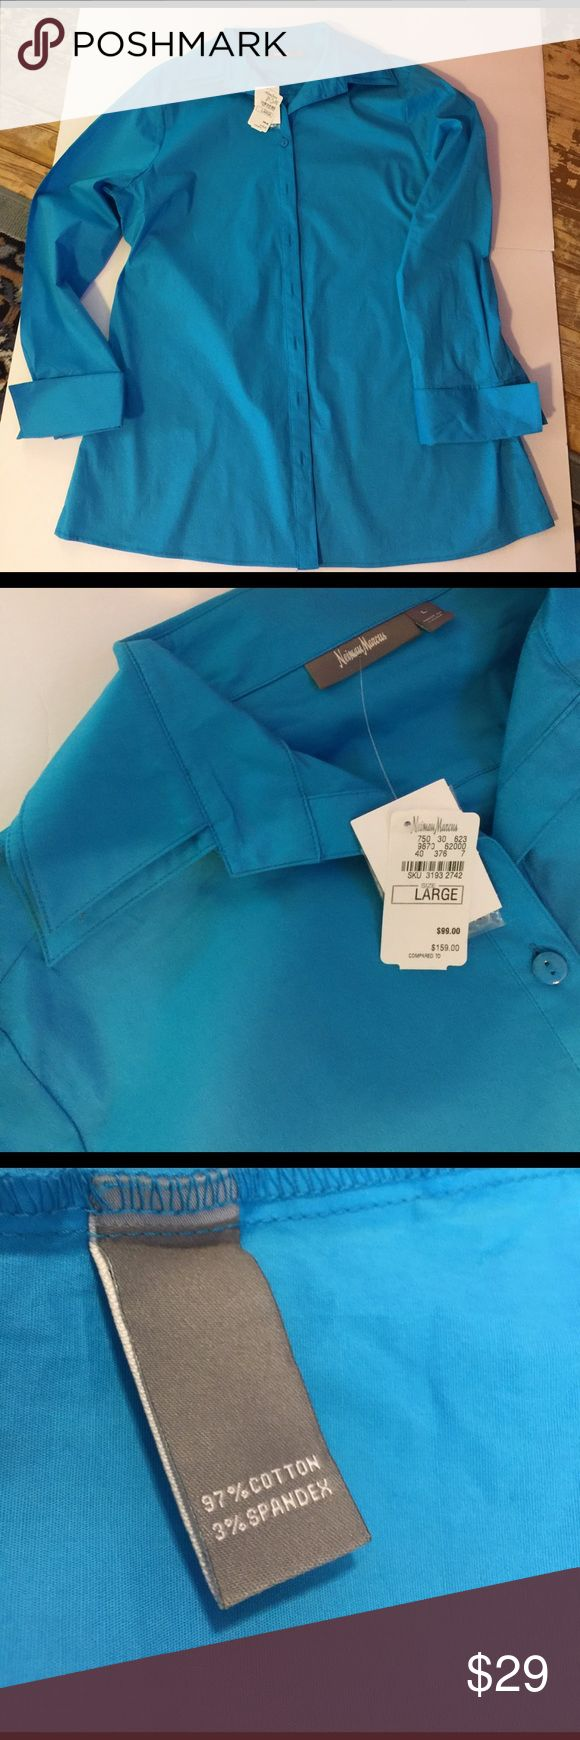 """Neiman Marcus NWT Bright blue Double Collar Shirt Lovely bright blue double collar peaked cuff ladies shirt in Large.  Tag price is $99. 97% cotton 3% Spandex machine washable separated. Shirt is longer length.  29"""" nape of neck to hem Neiman Marcus Tops Button Down Shirts"""